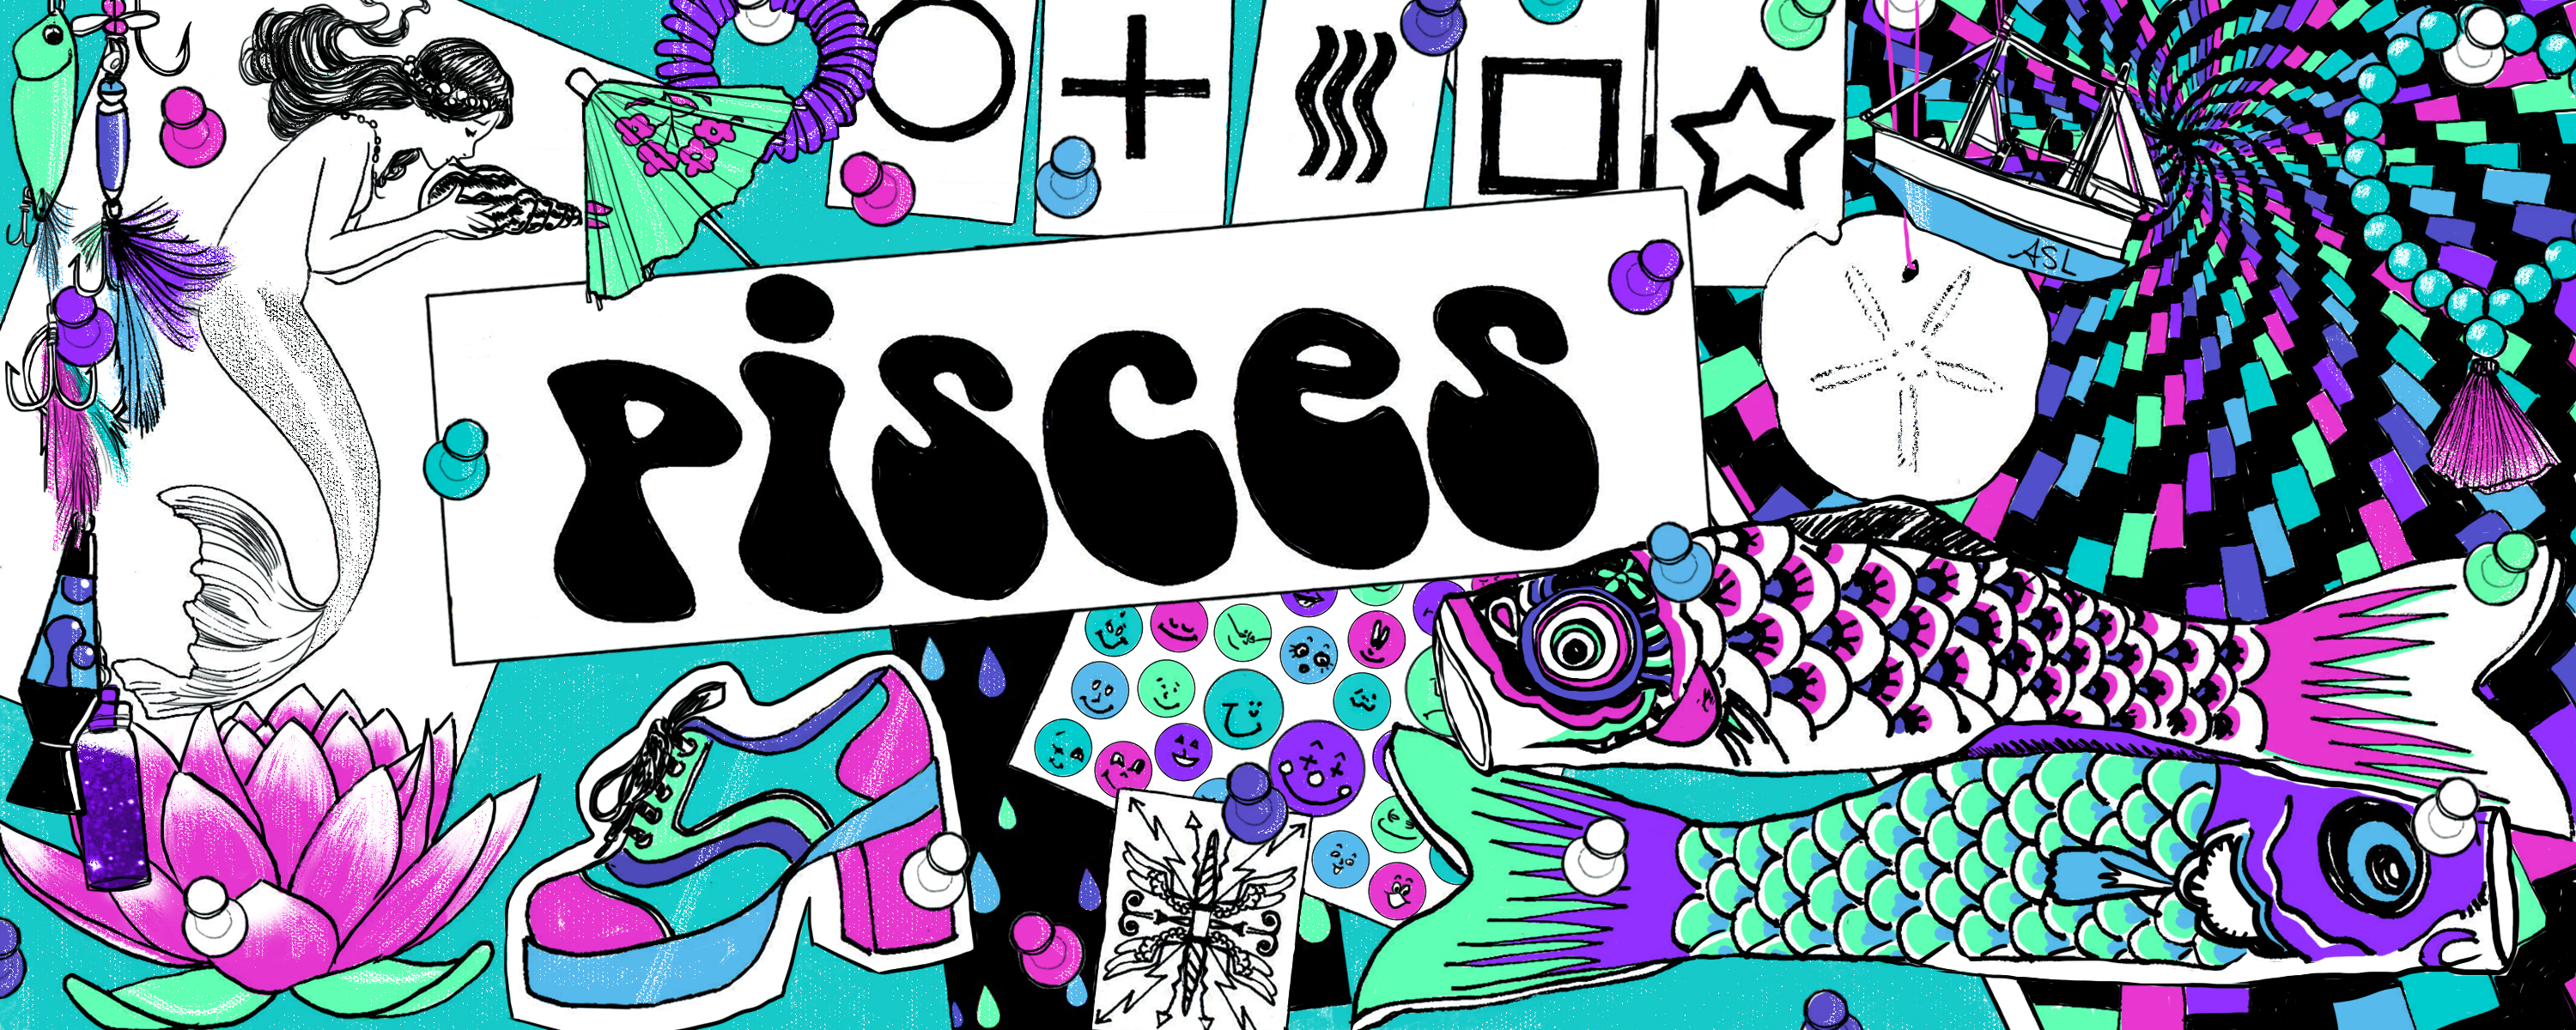 b4d0ac421 Monthly Horoscope: Pisces, June 2019 - VICE